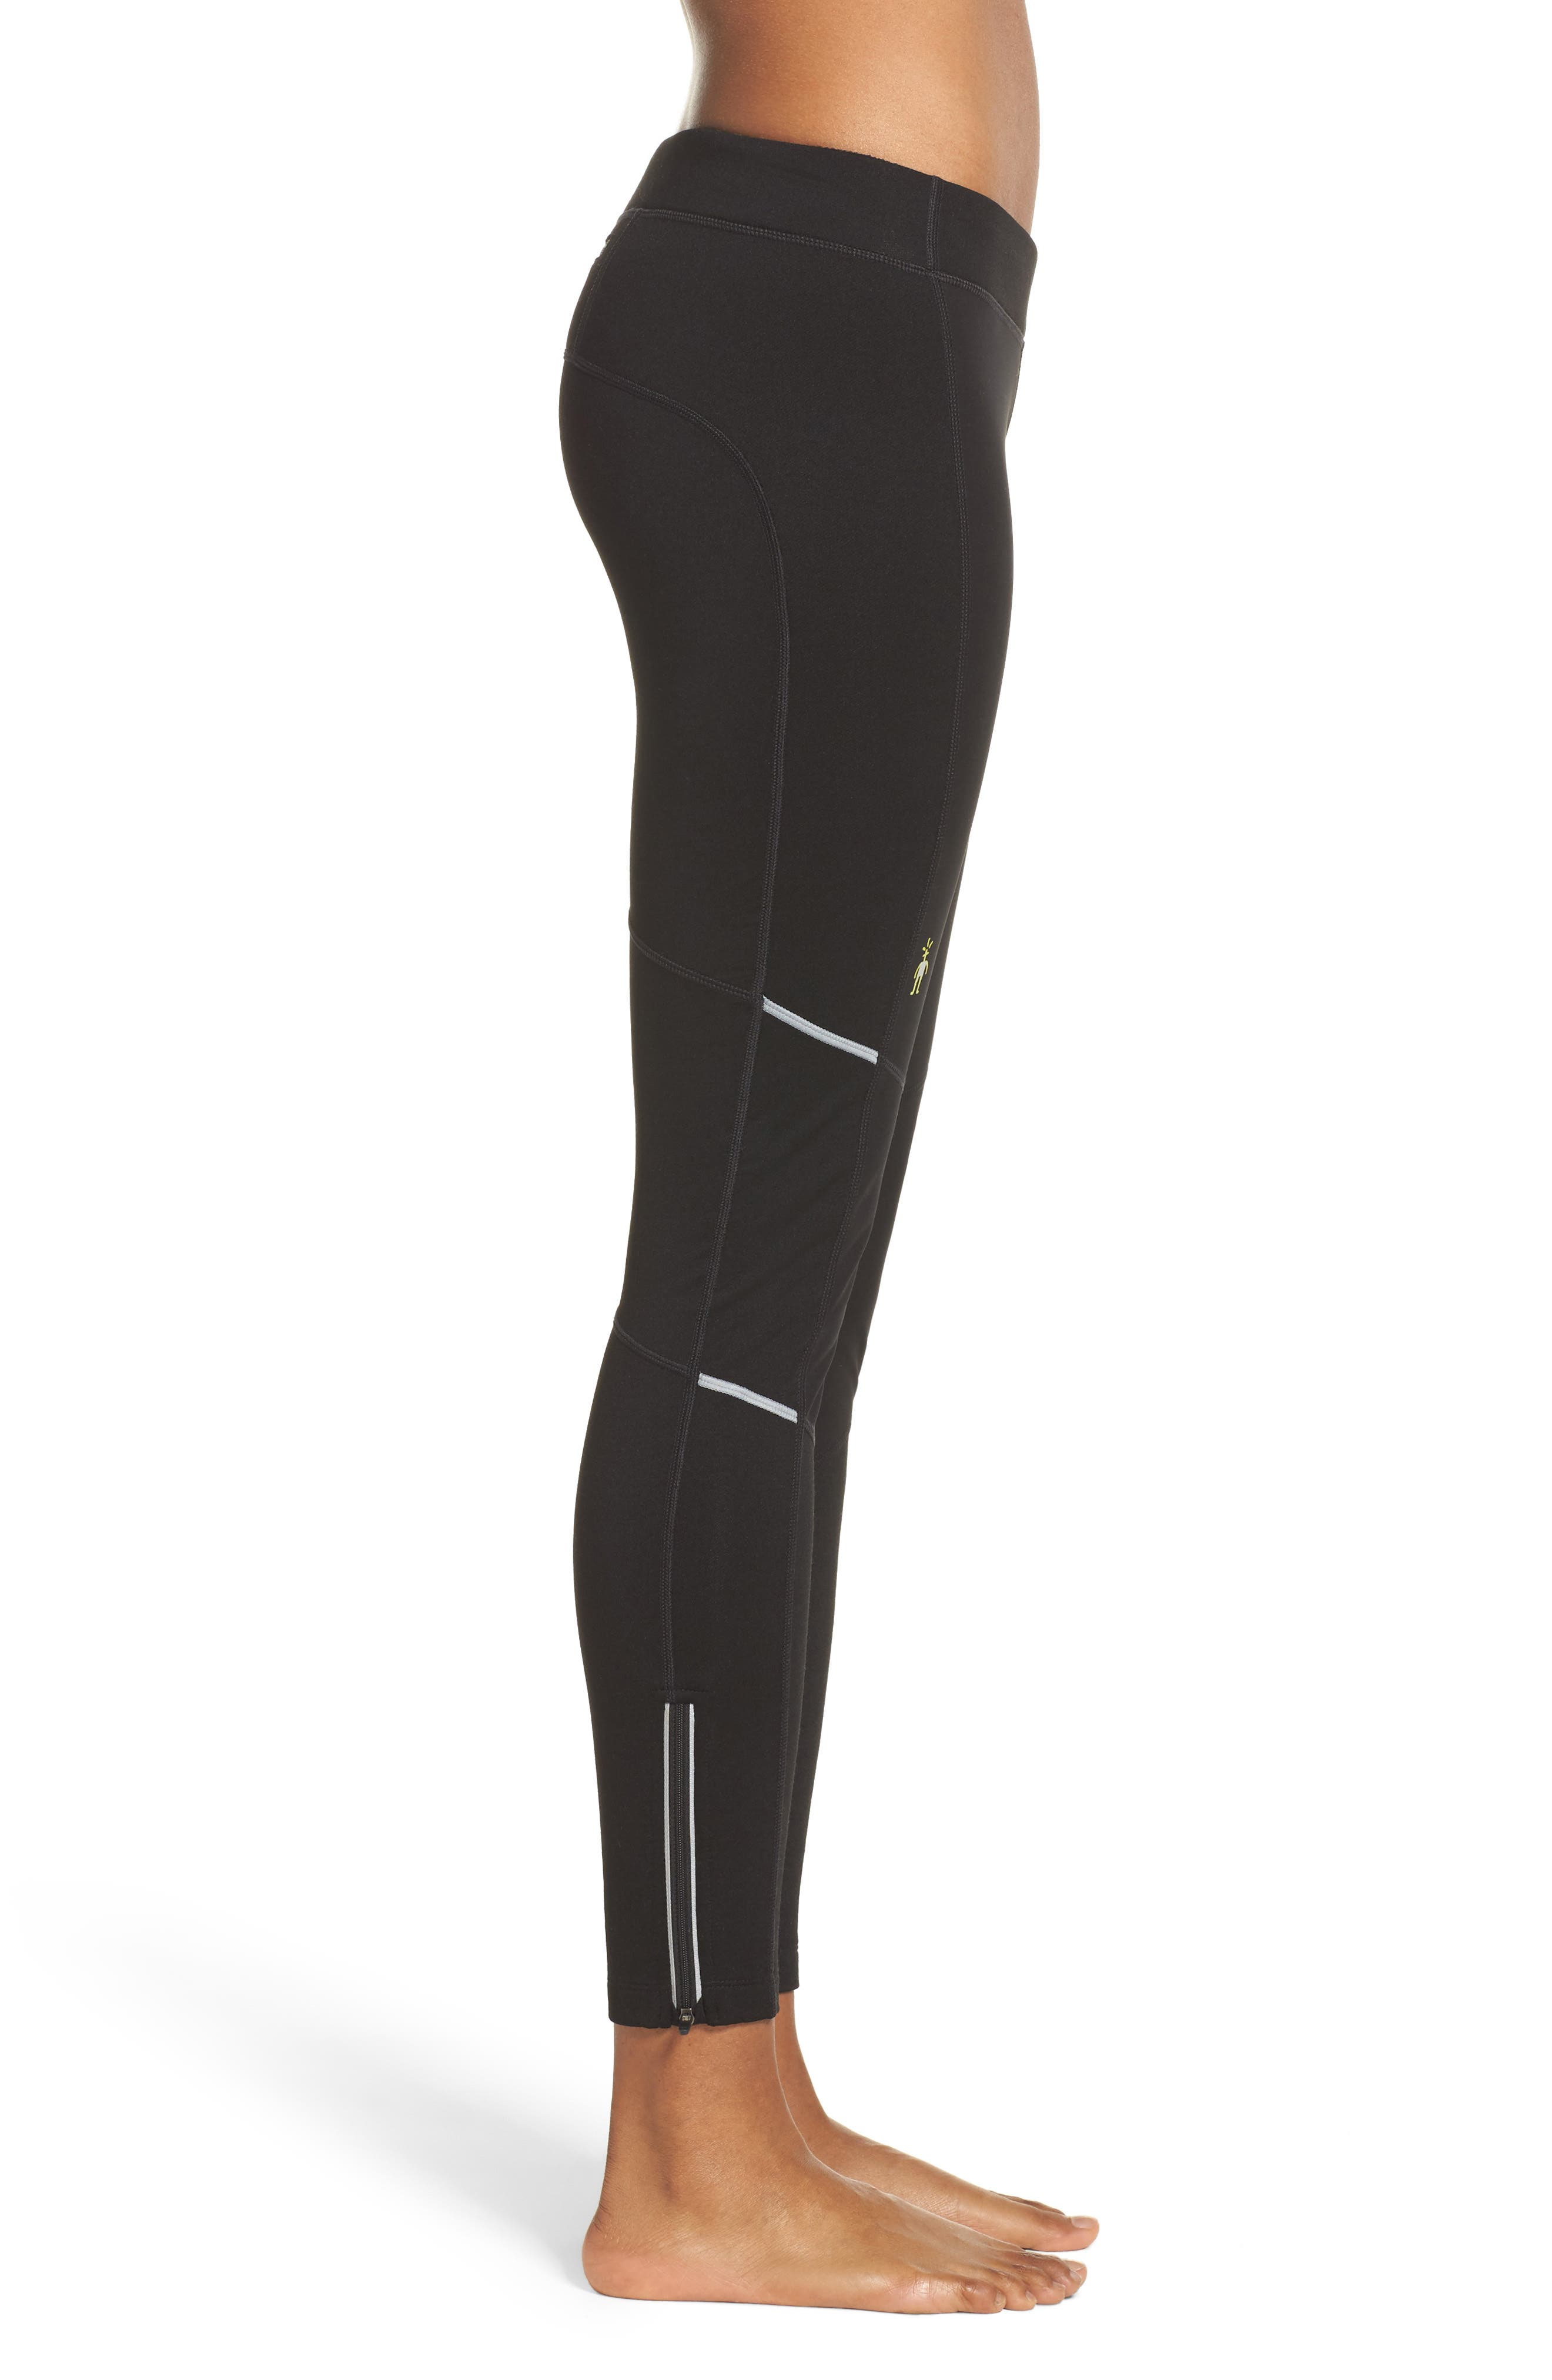 PhD Wind Tights,                             Alternate thumbnail 3, color,                             001